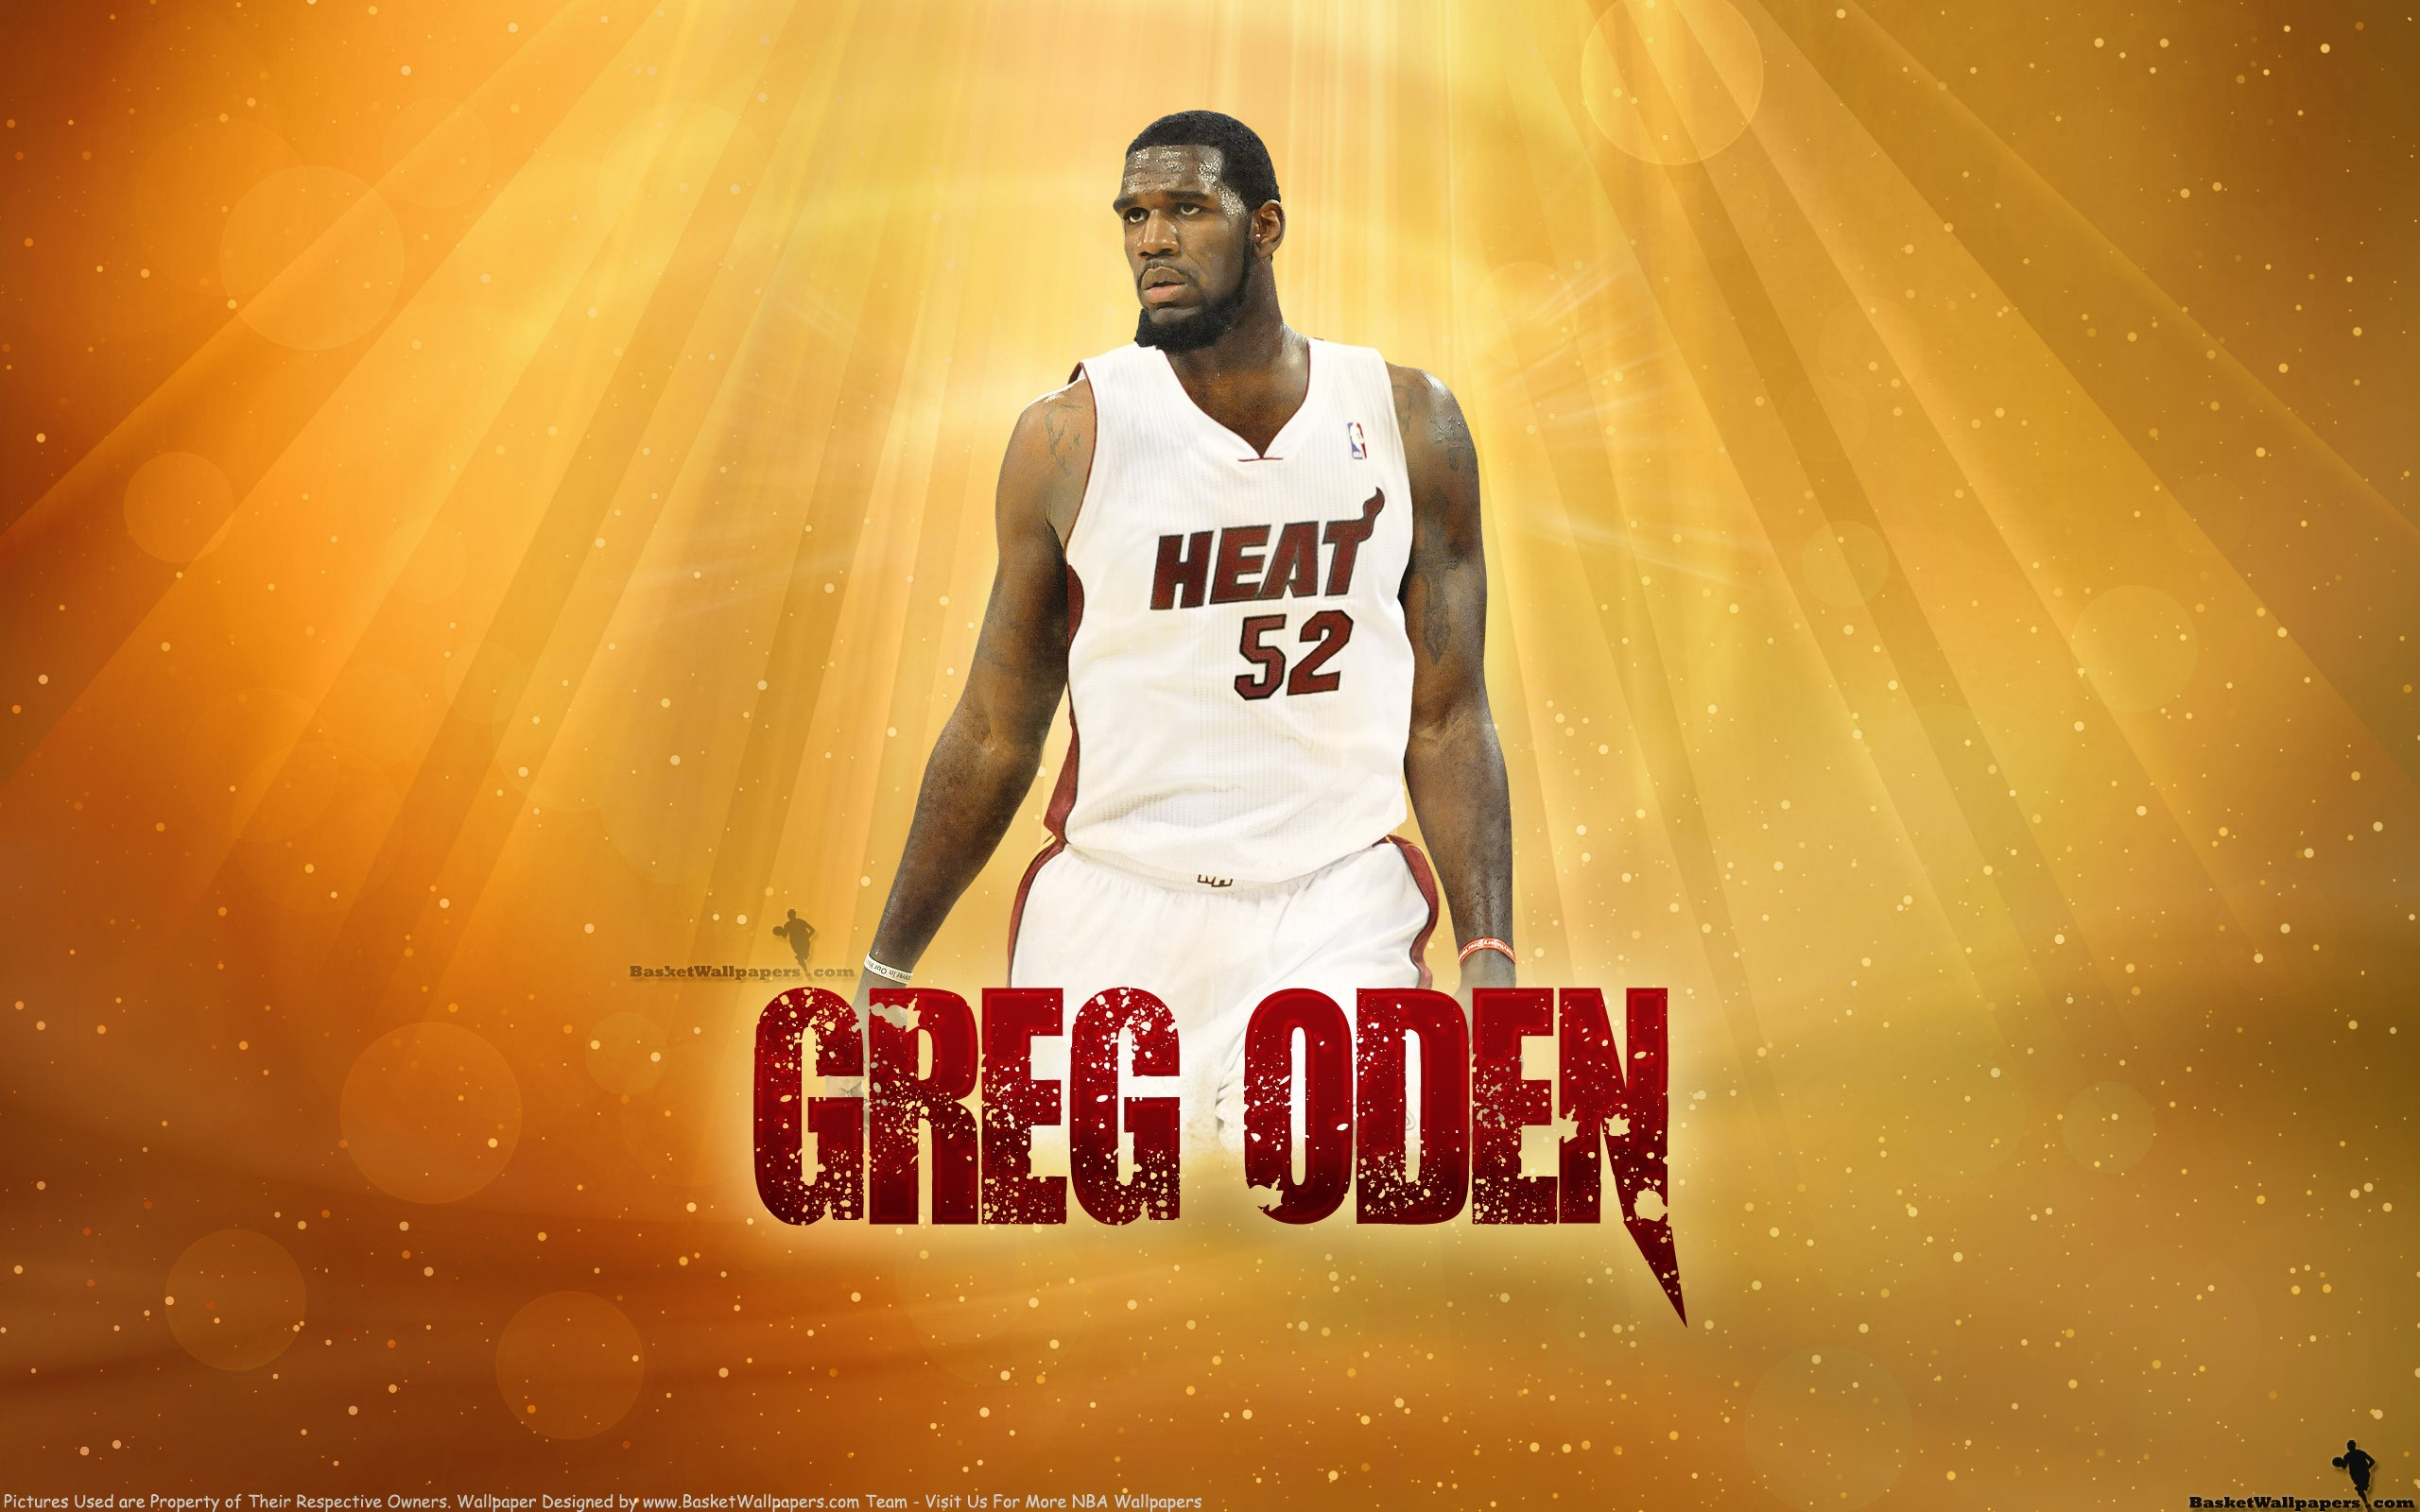 greg oden miami heat hd wallpapers hd wallpapers 4k artwork tablet colourful pictures mac desktop images samsung phone wallpapers